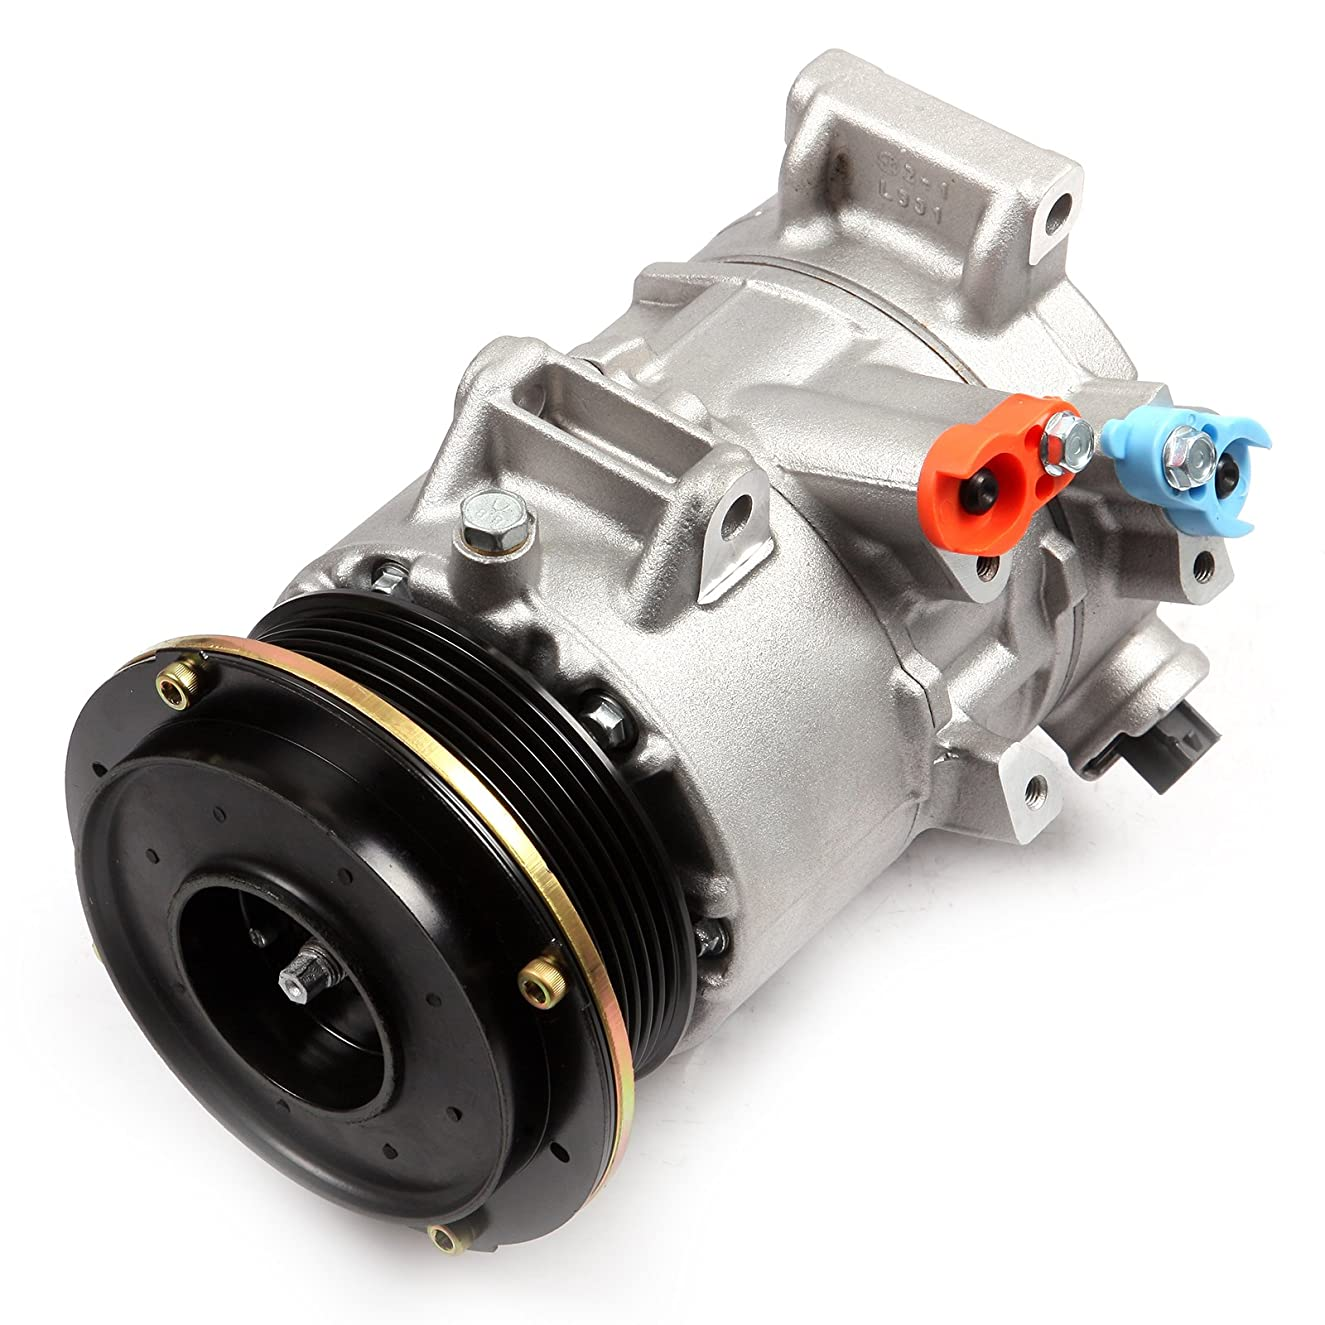 ECCPP AC Compressor and A/C Cluth Replacement for CO 11178JC Automotive Replacement Compressor Assembly for 2006-2008 2007 Toyota RAV4 2.4L DW97386